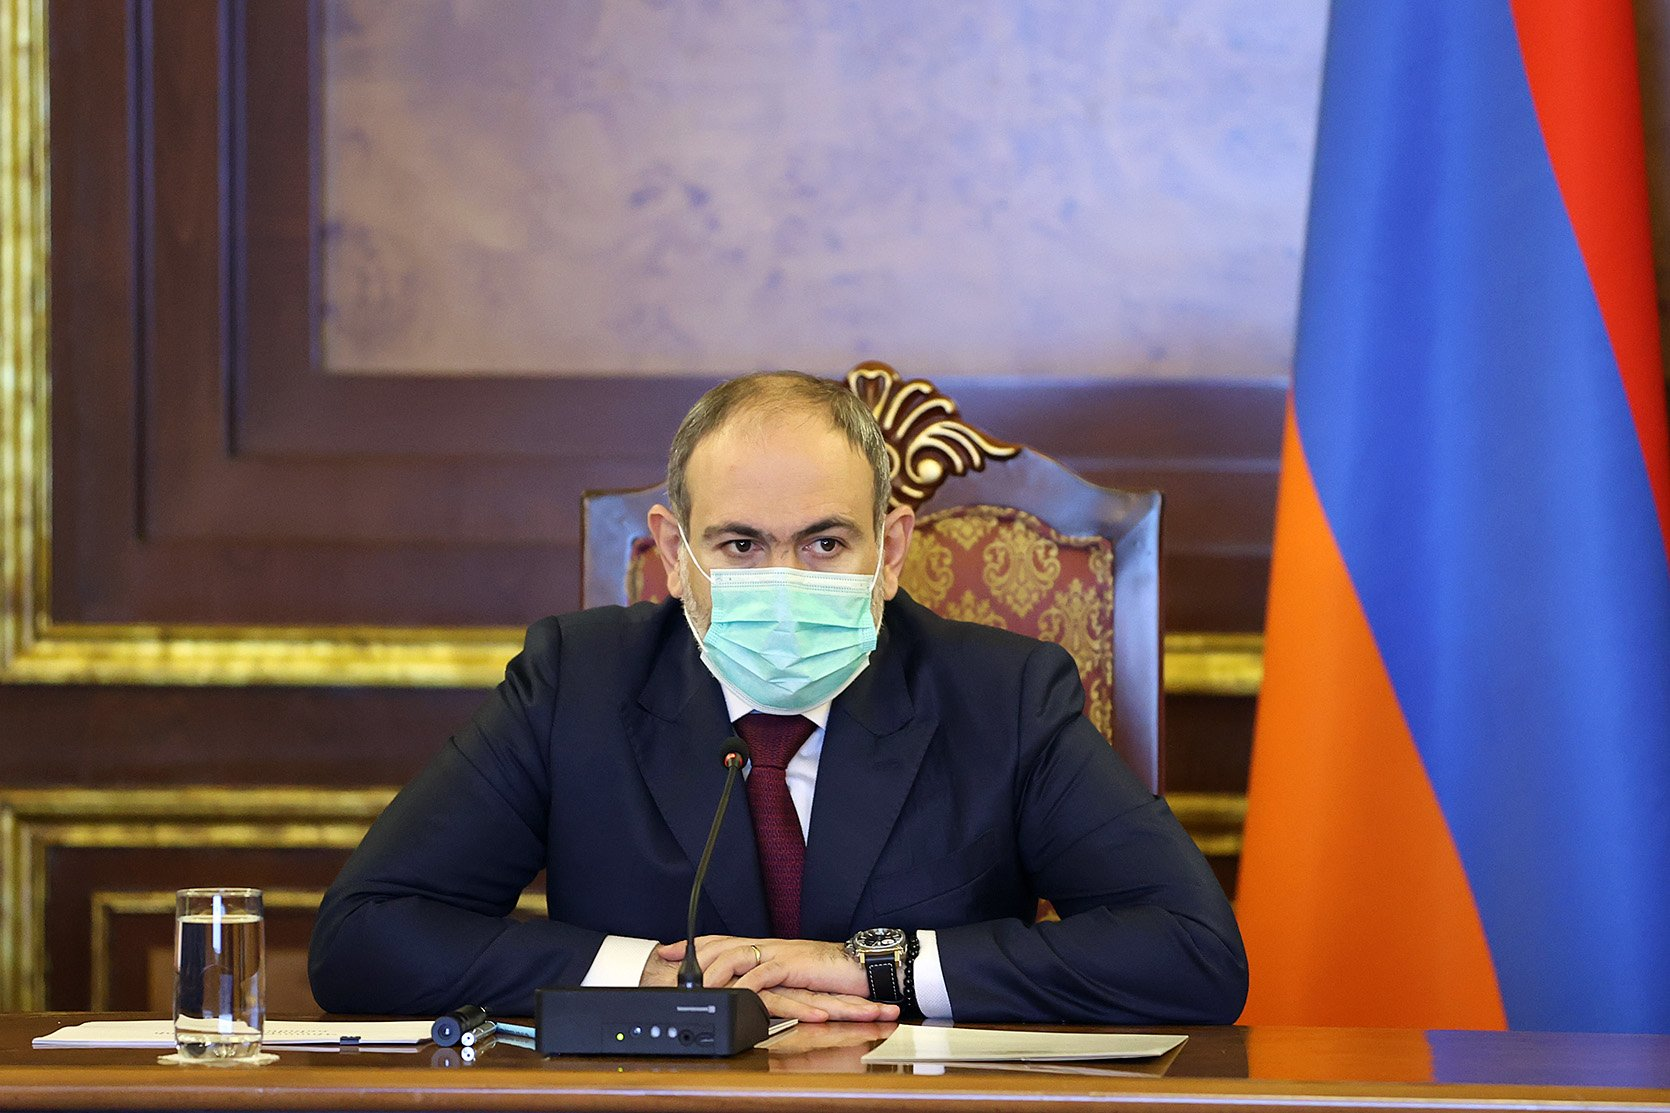 Pashinyan claims military coup attempt and fires head of General Staff